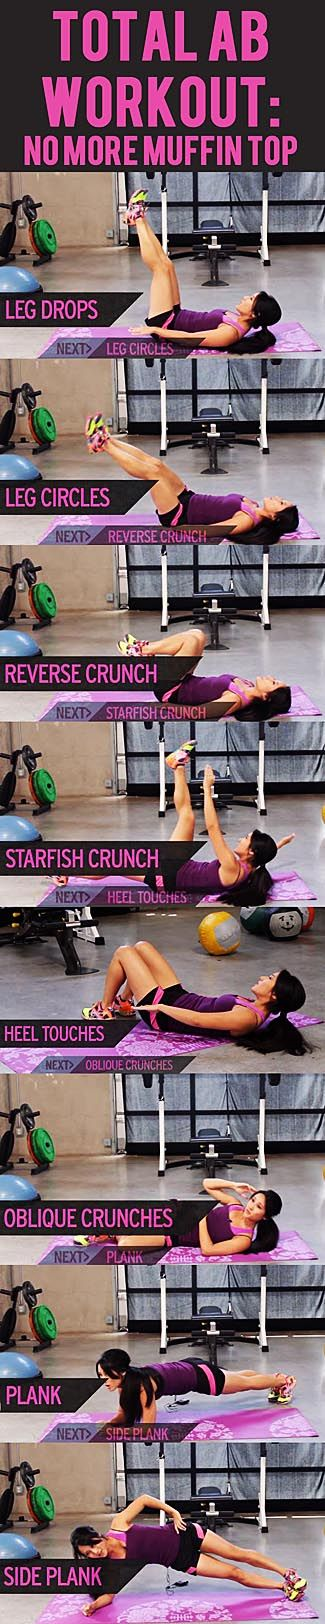 Work those abs baby! Try this great workout today.